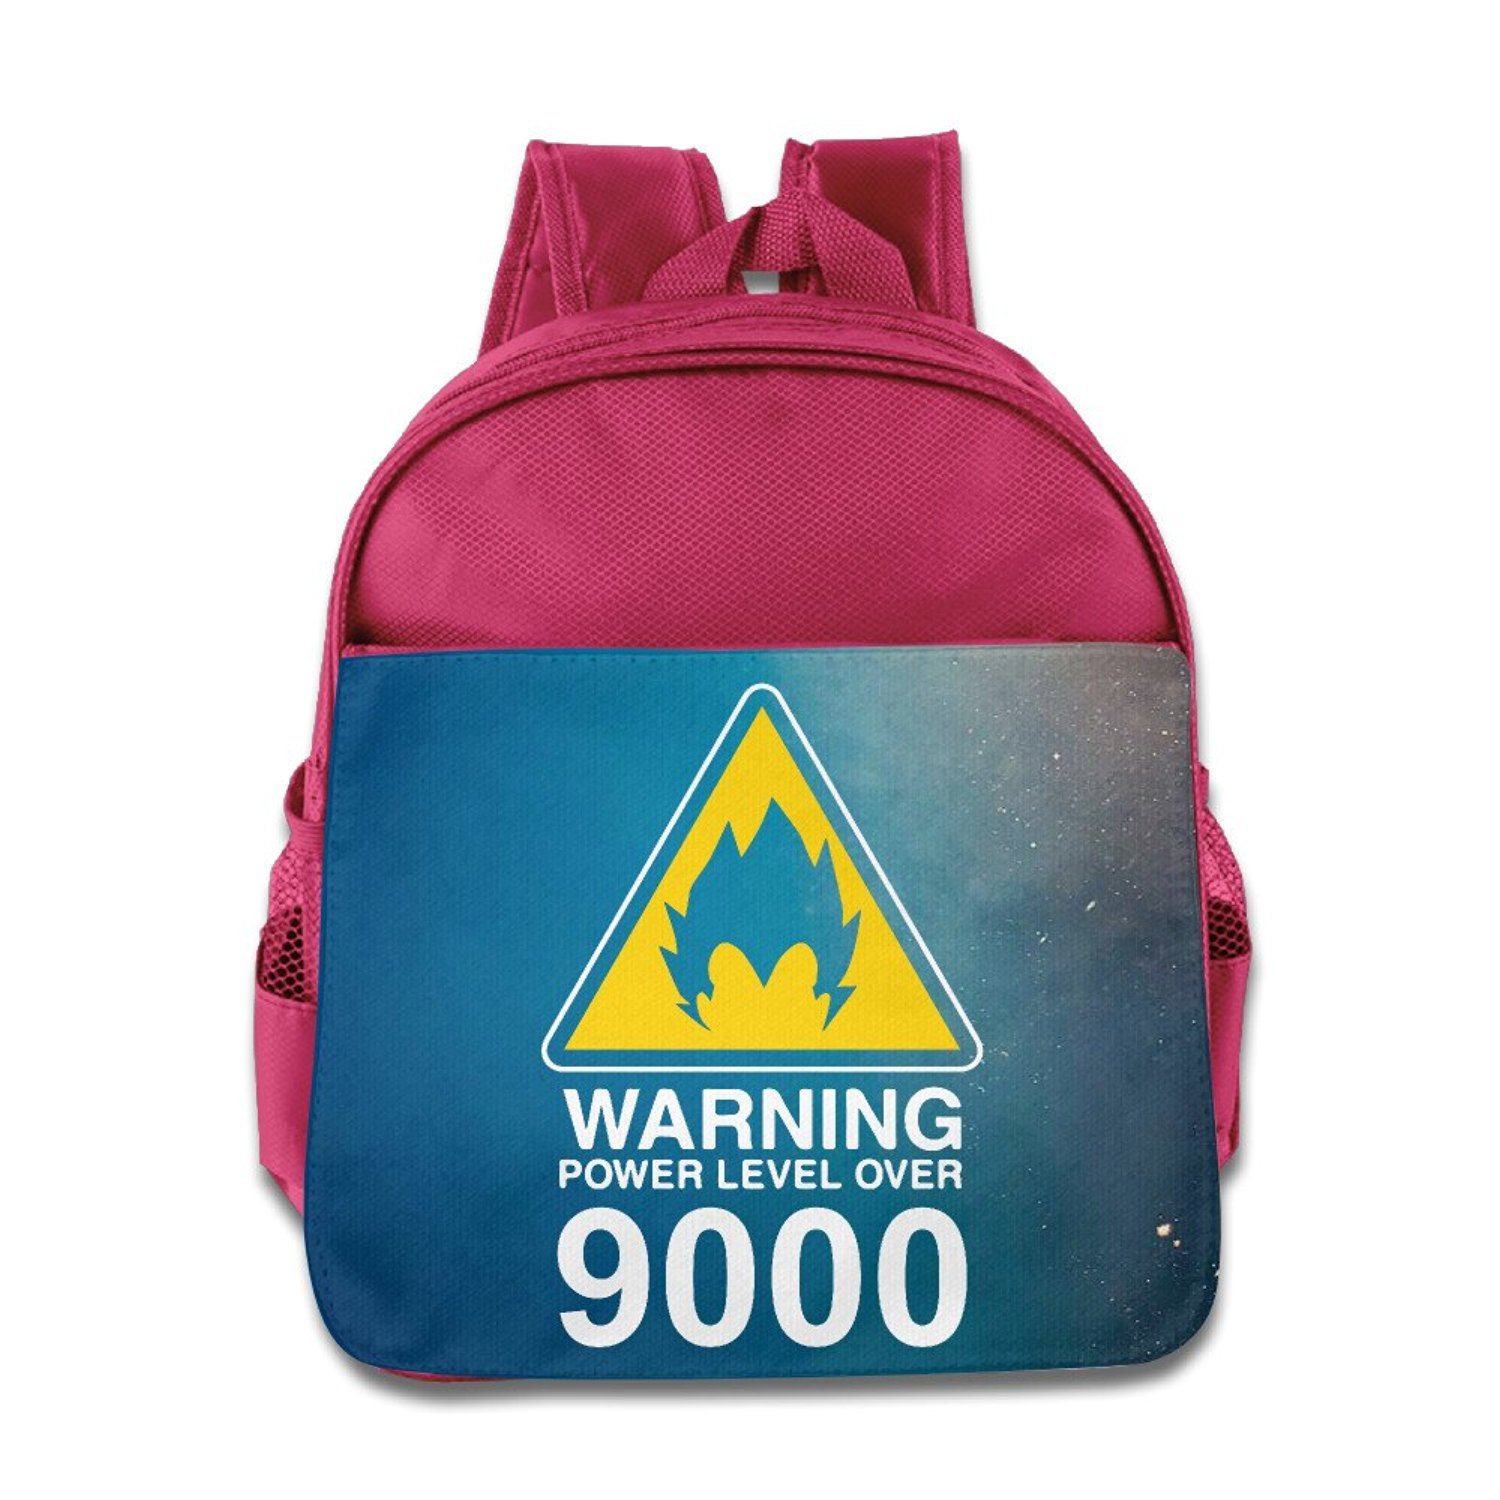 45a86759b3df4 Get Quotations · NaDeShop Warning Power Level Over 9000 Dragon Ball Kids   School Backpack Bag